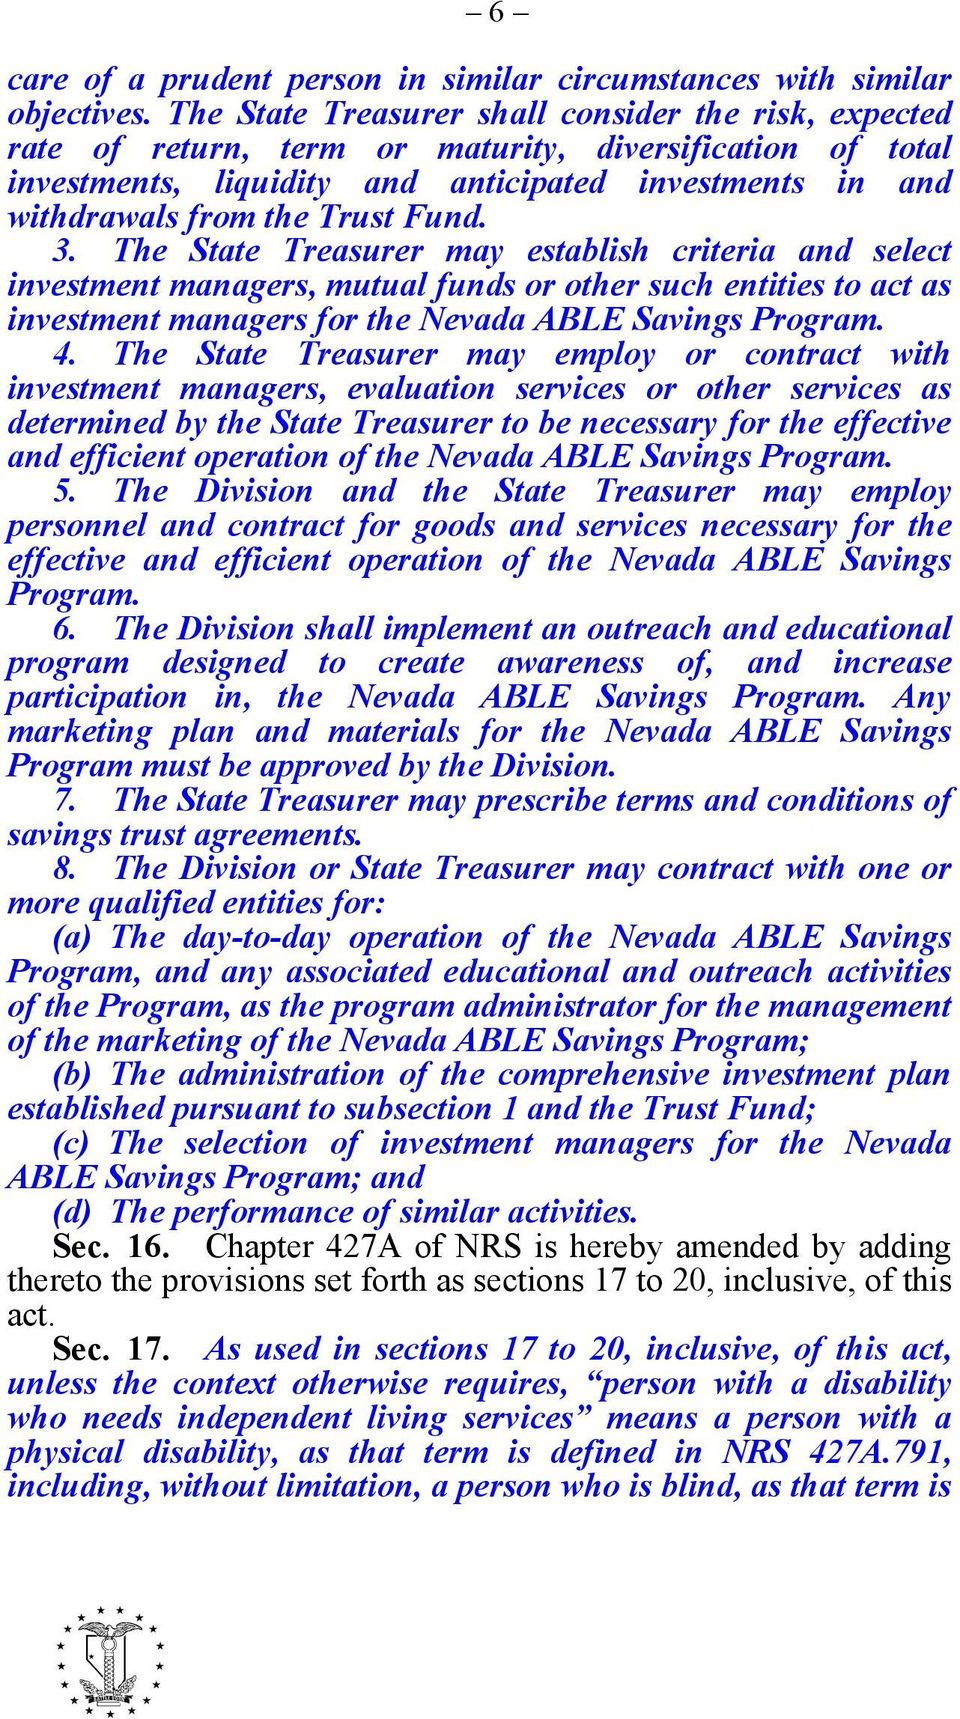 Fund. 3. The State Treasurer may establish criteria and select investment managers, mutual funds or other such entities to act as investment managers for the Nevada ABLE Savings Program. 4.